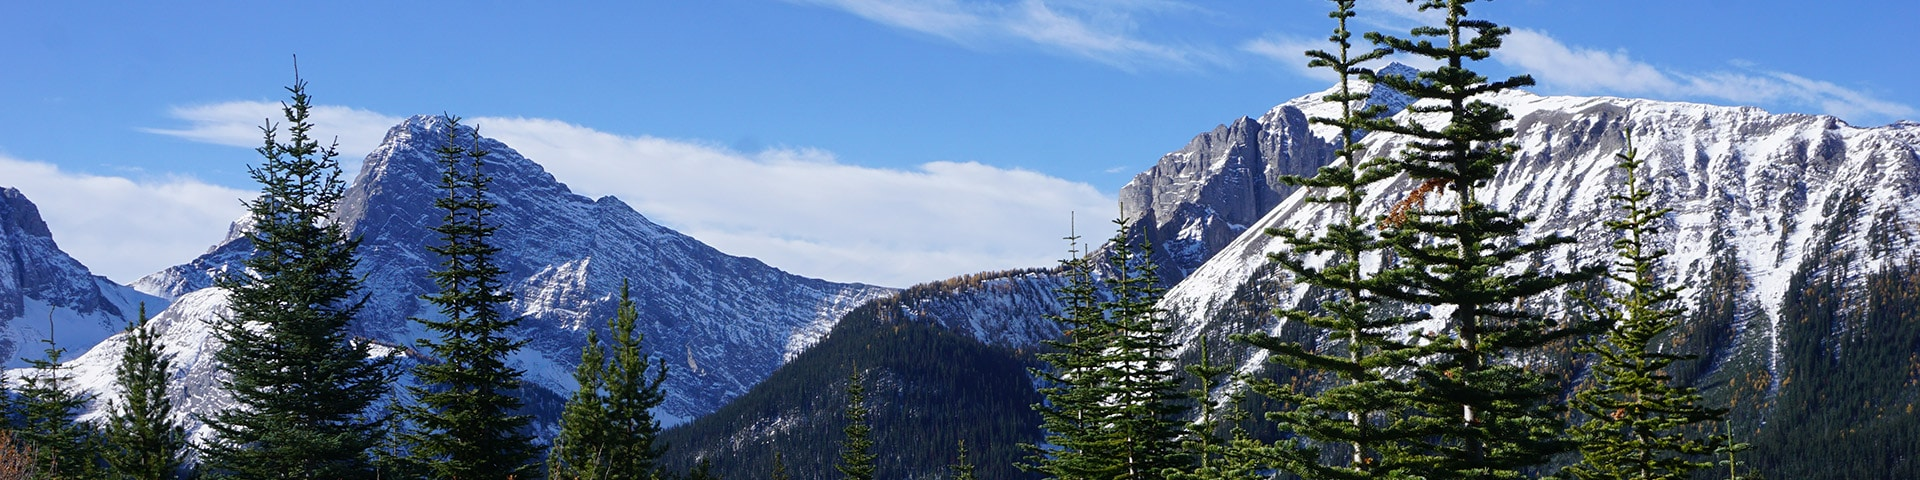 Panoramic views of the Rummel Lake hike from Smith-Dorrien Trail in Kananaskis near Canmore